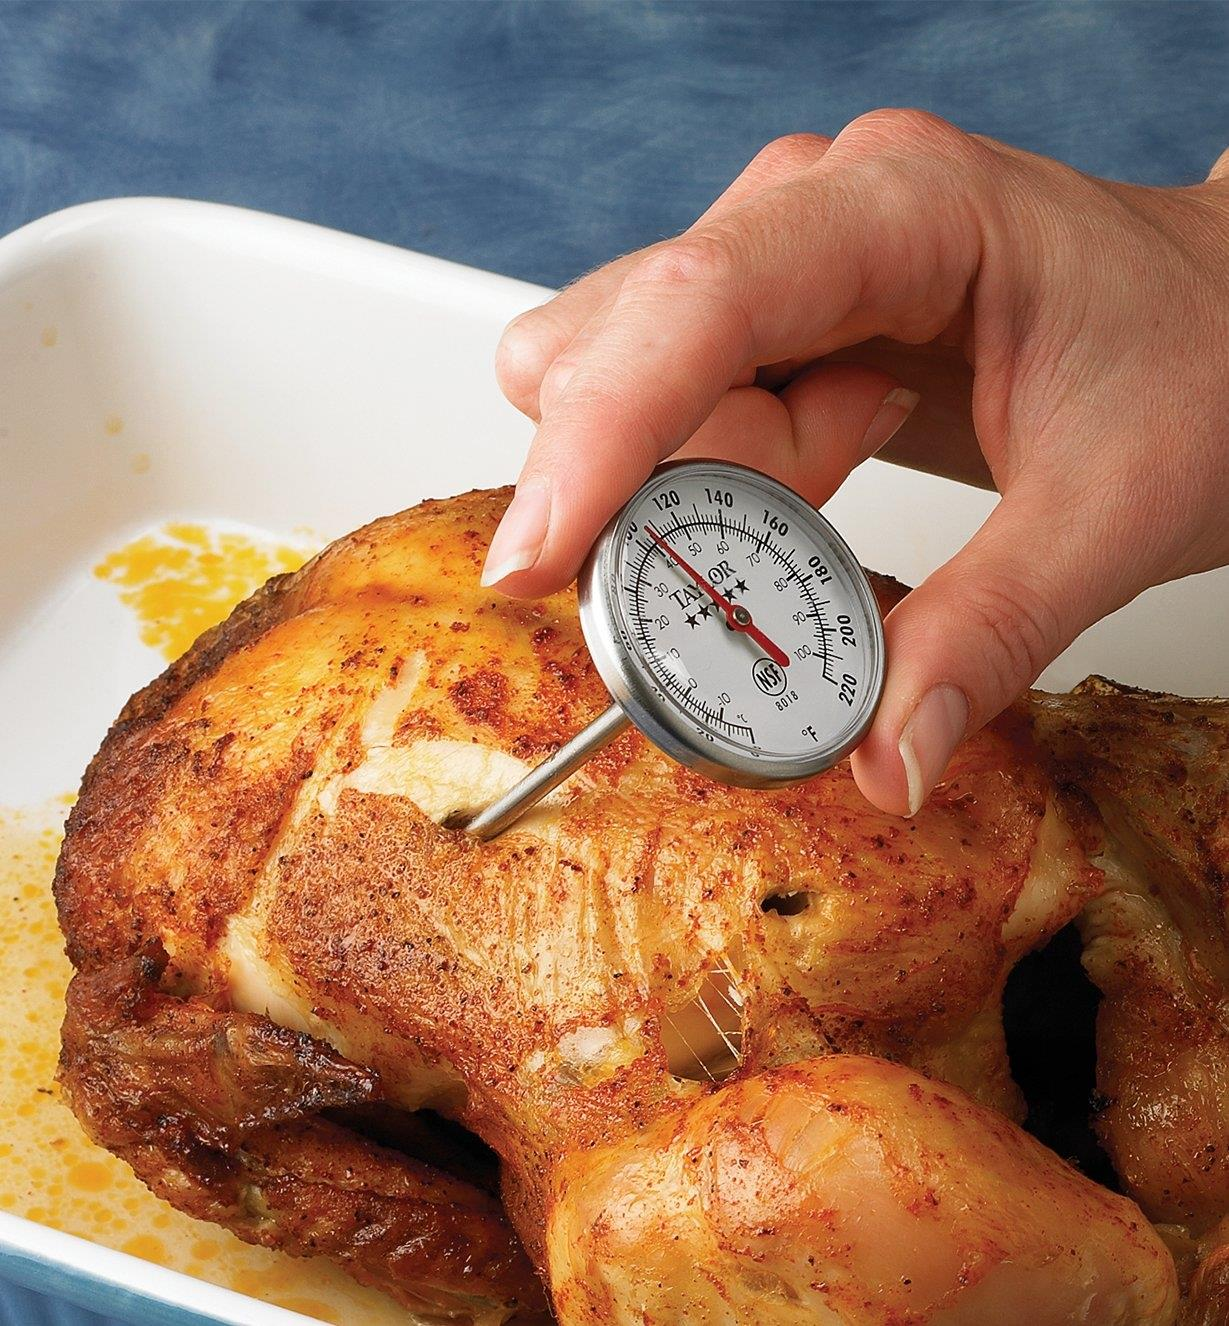 Instant-Read Thermometer inserted in a roast chicken